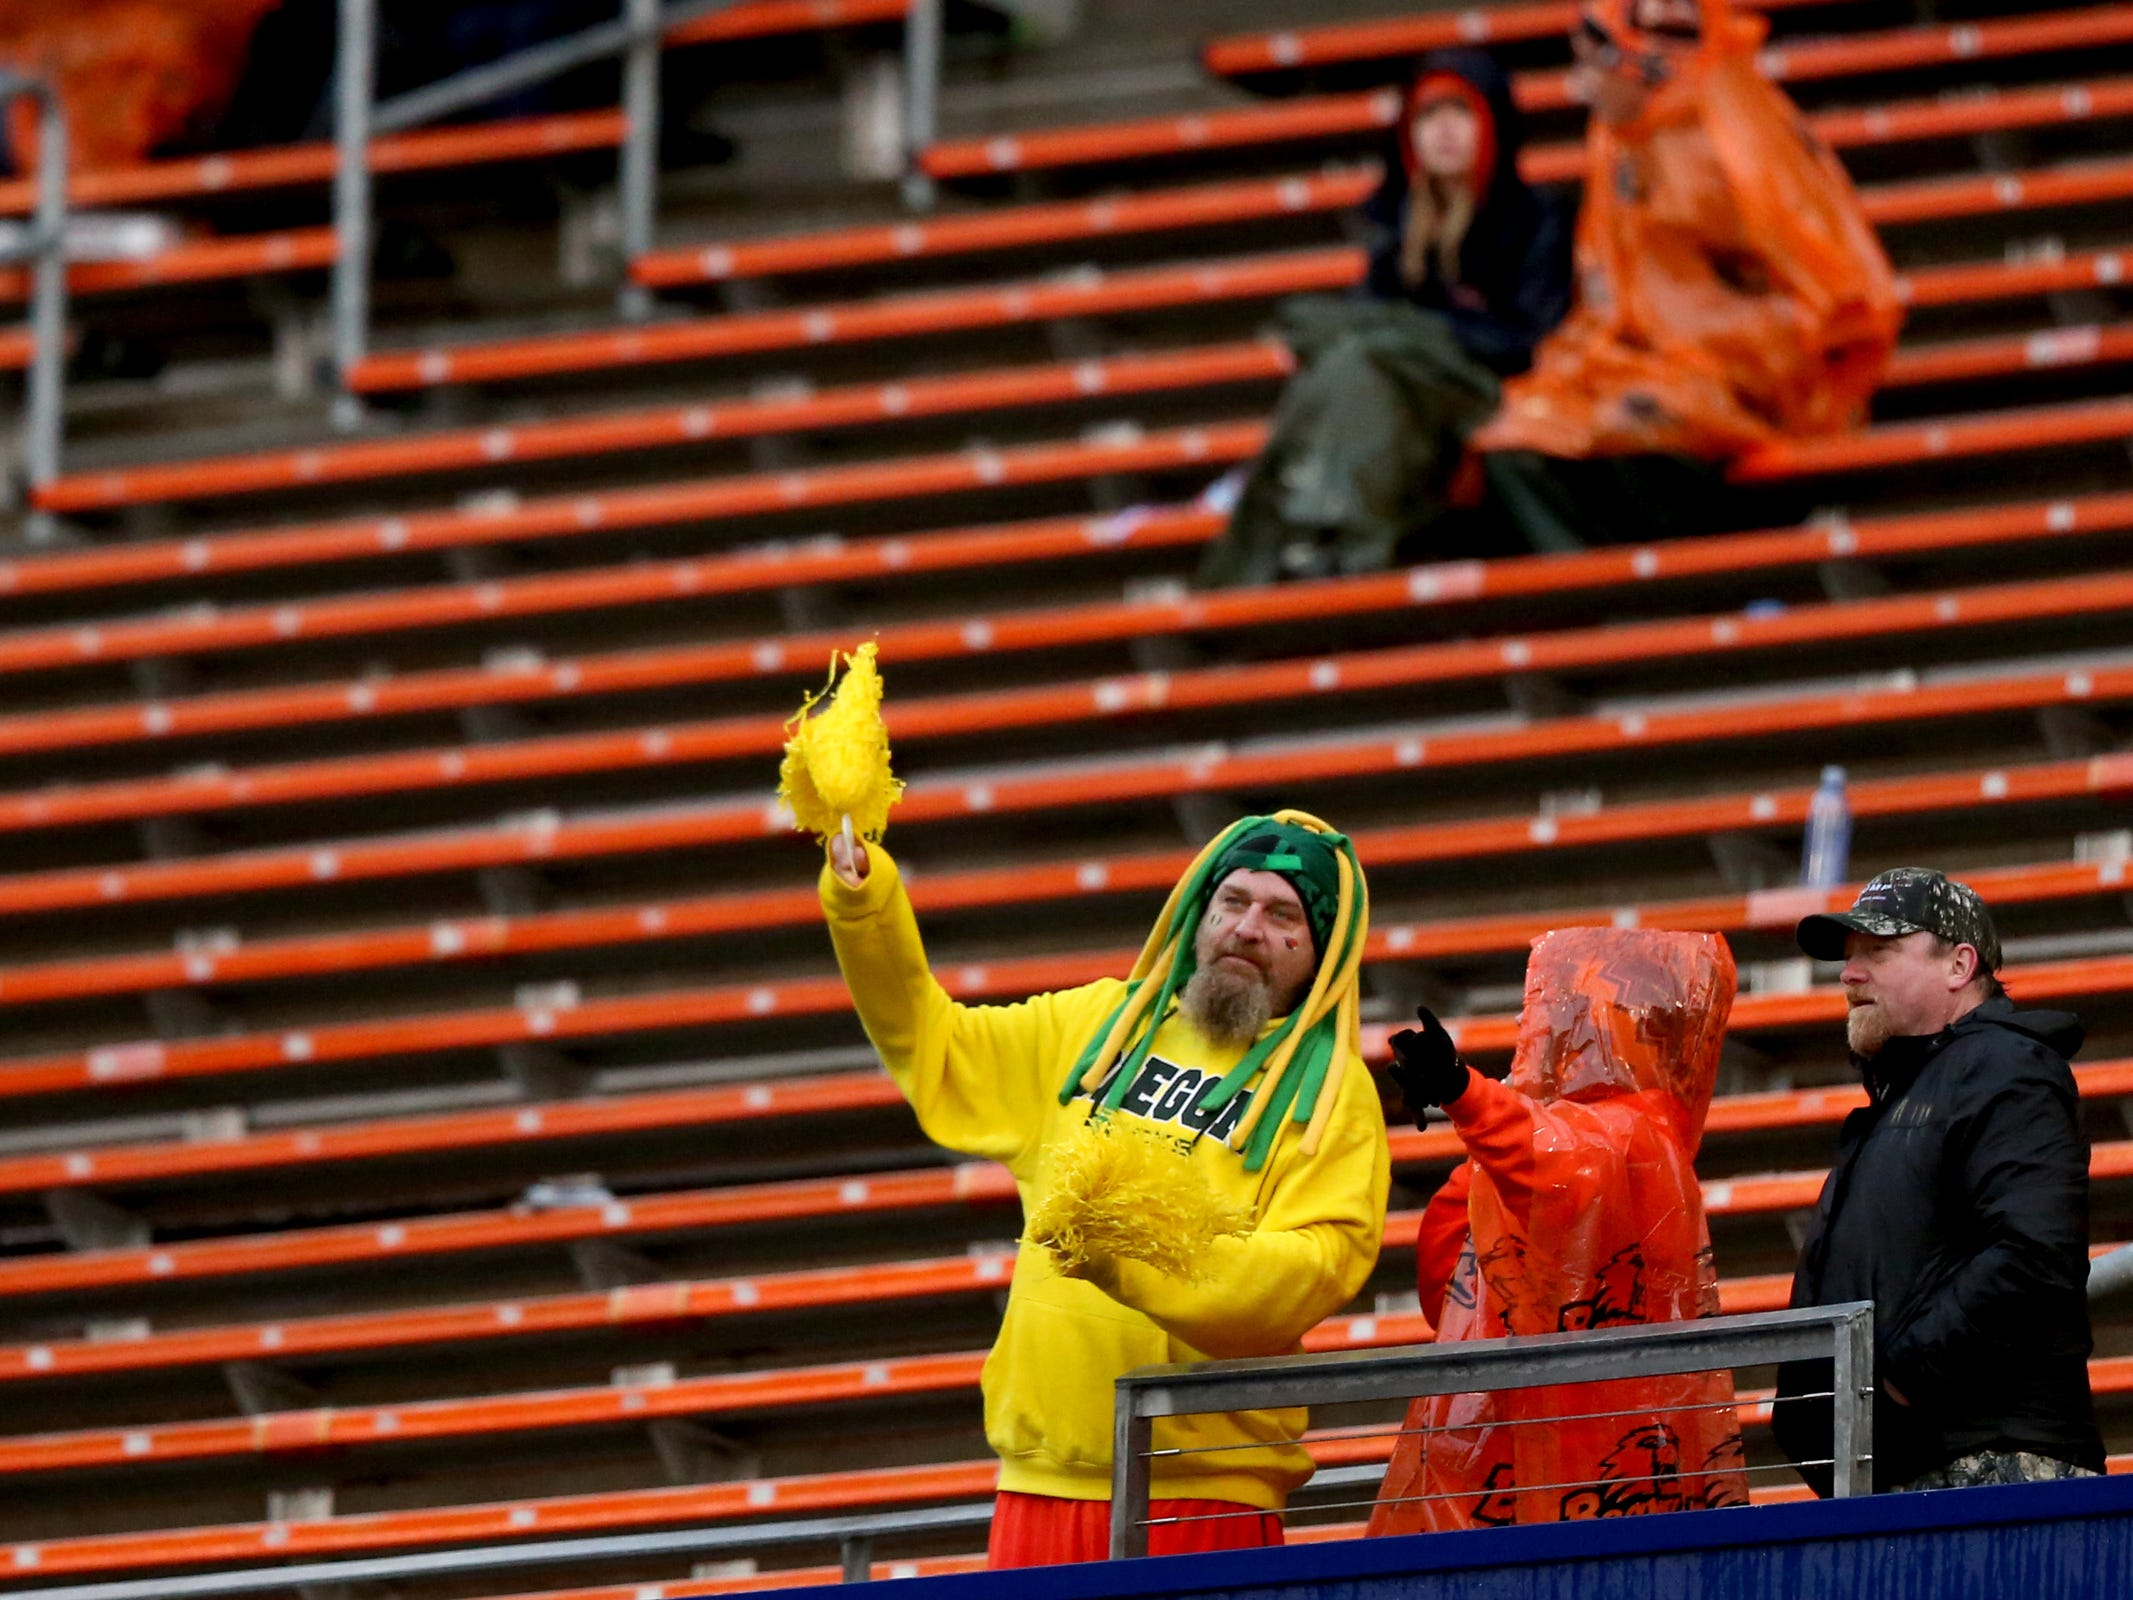 The stands are mostly empty in the fourth quarter of the Oregon vs. Oregon State Civil war football game at Oregon State University in Corvallis on Friday, Nov. 23, 2018. The Ducks won the game 55-15.